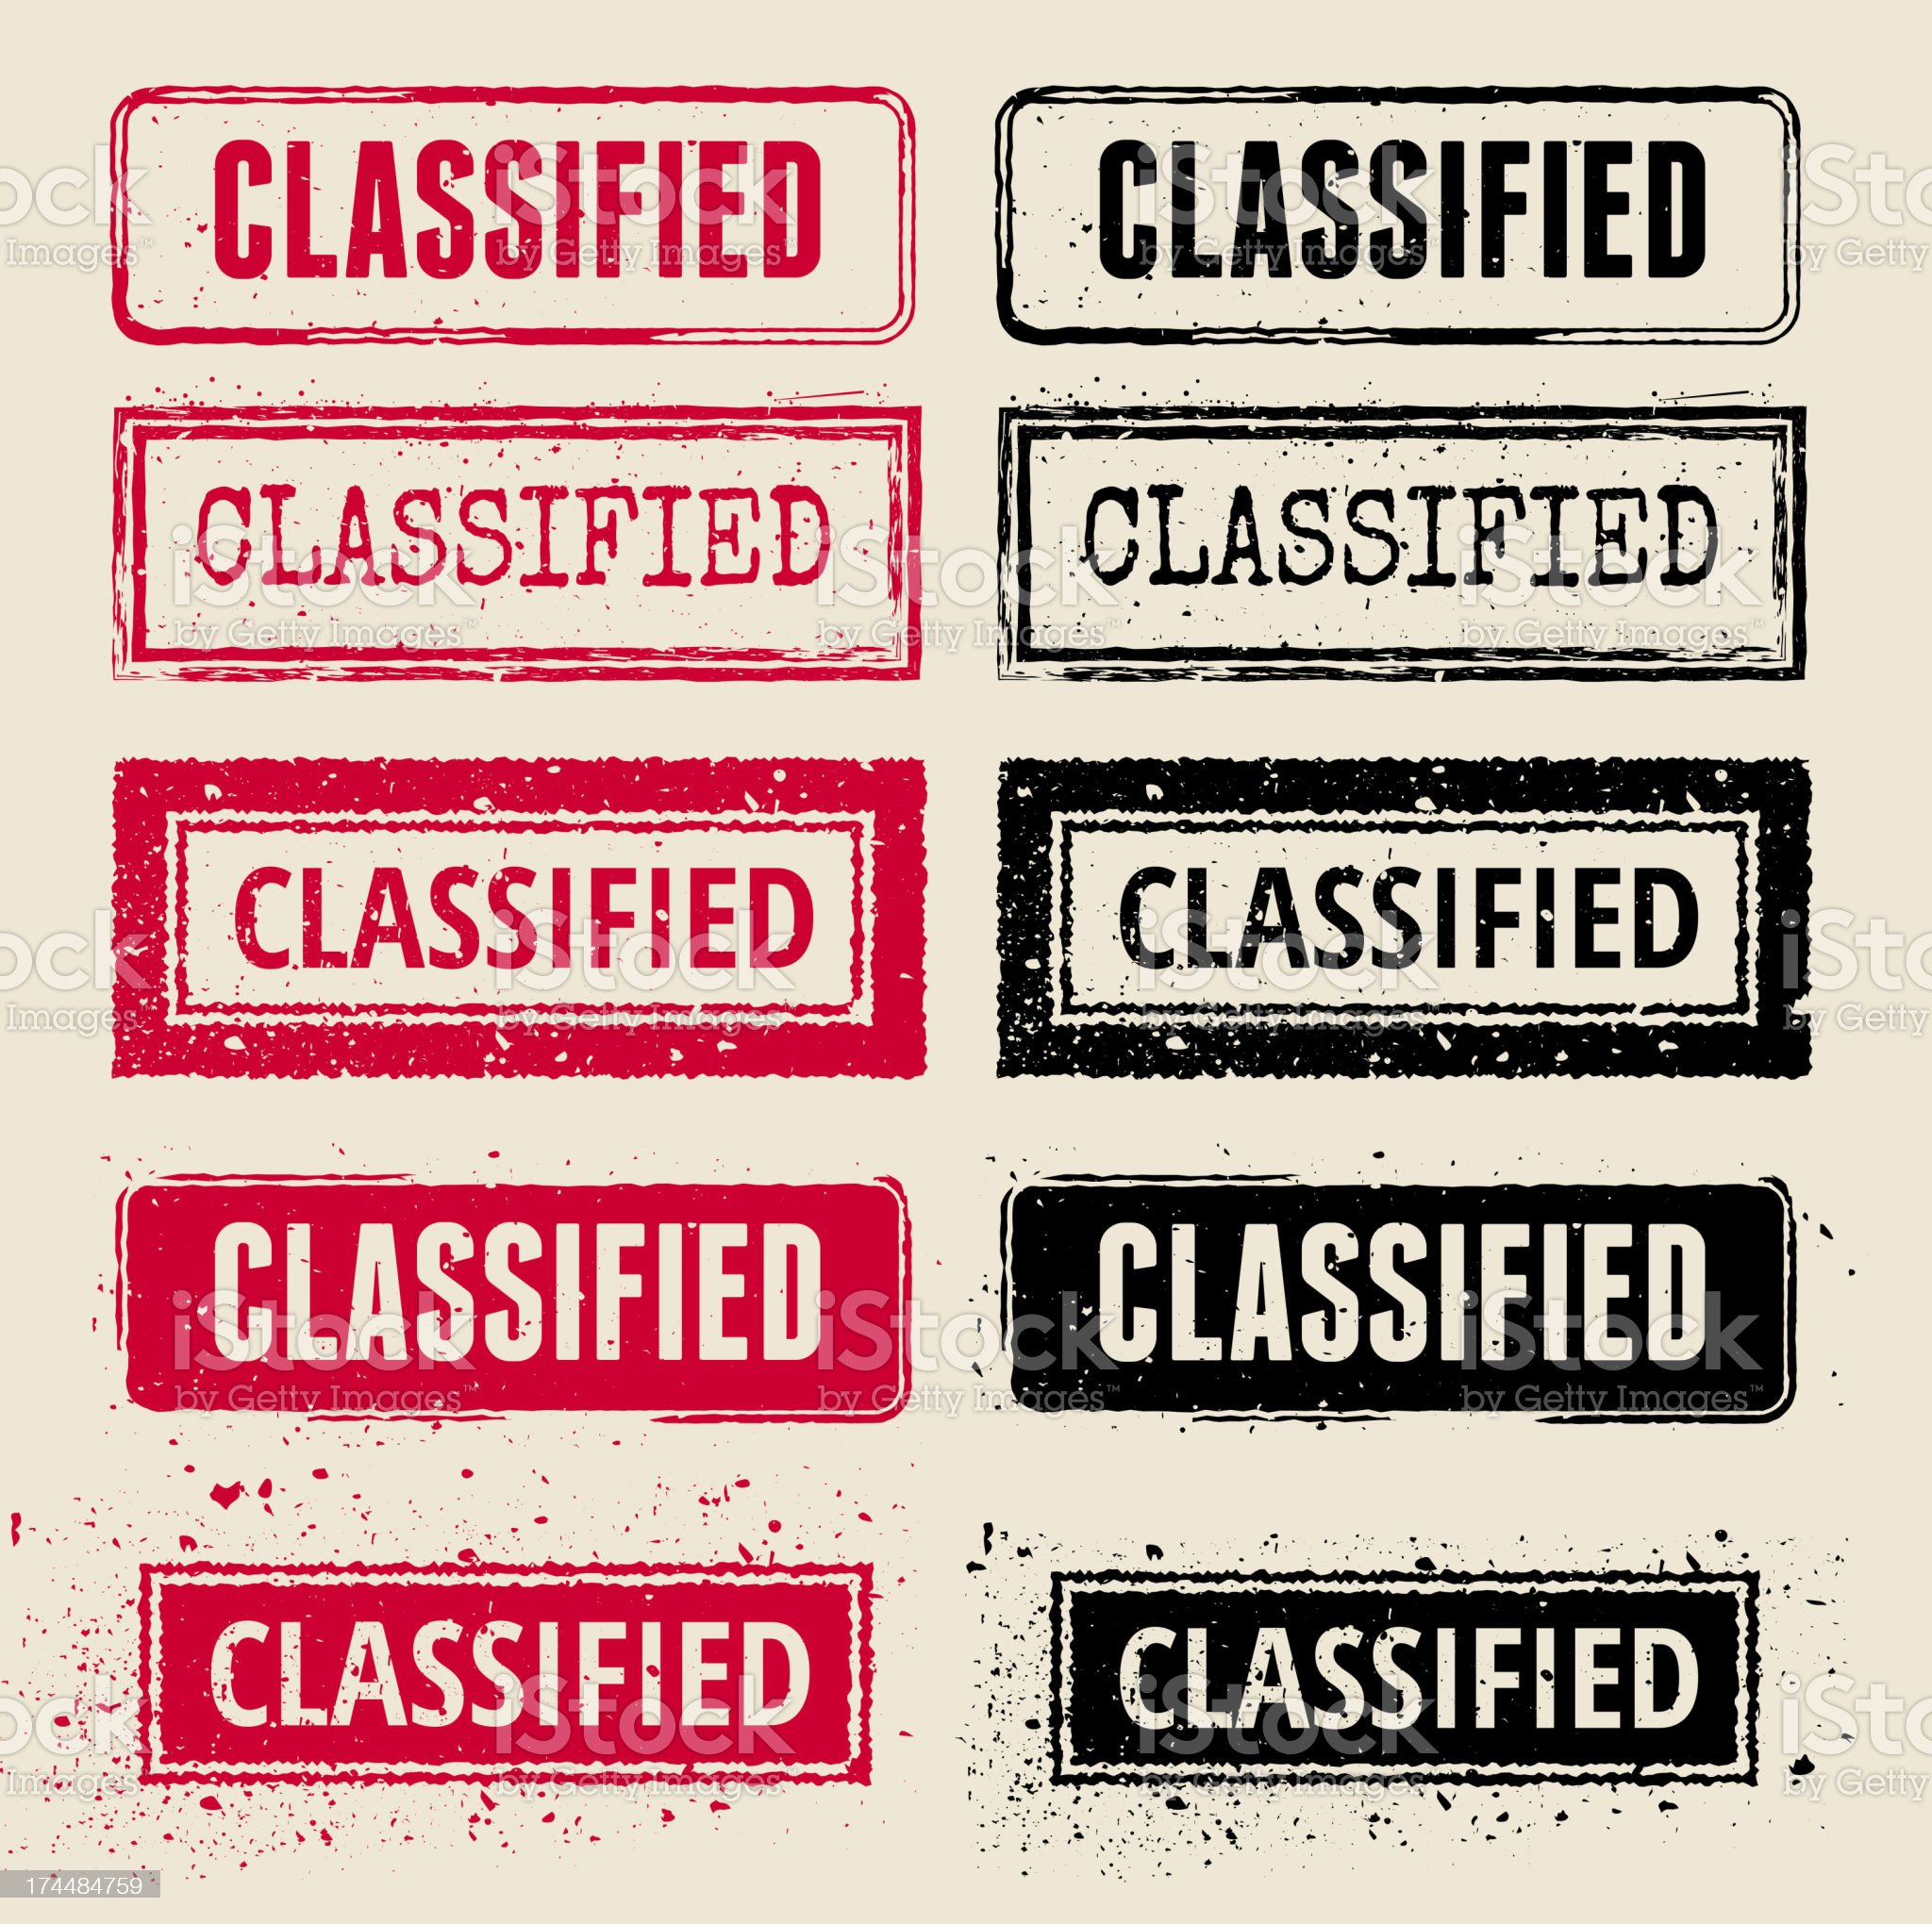 Classified Vector Rubber Stamp Collections royalty-free stock vector art